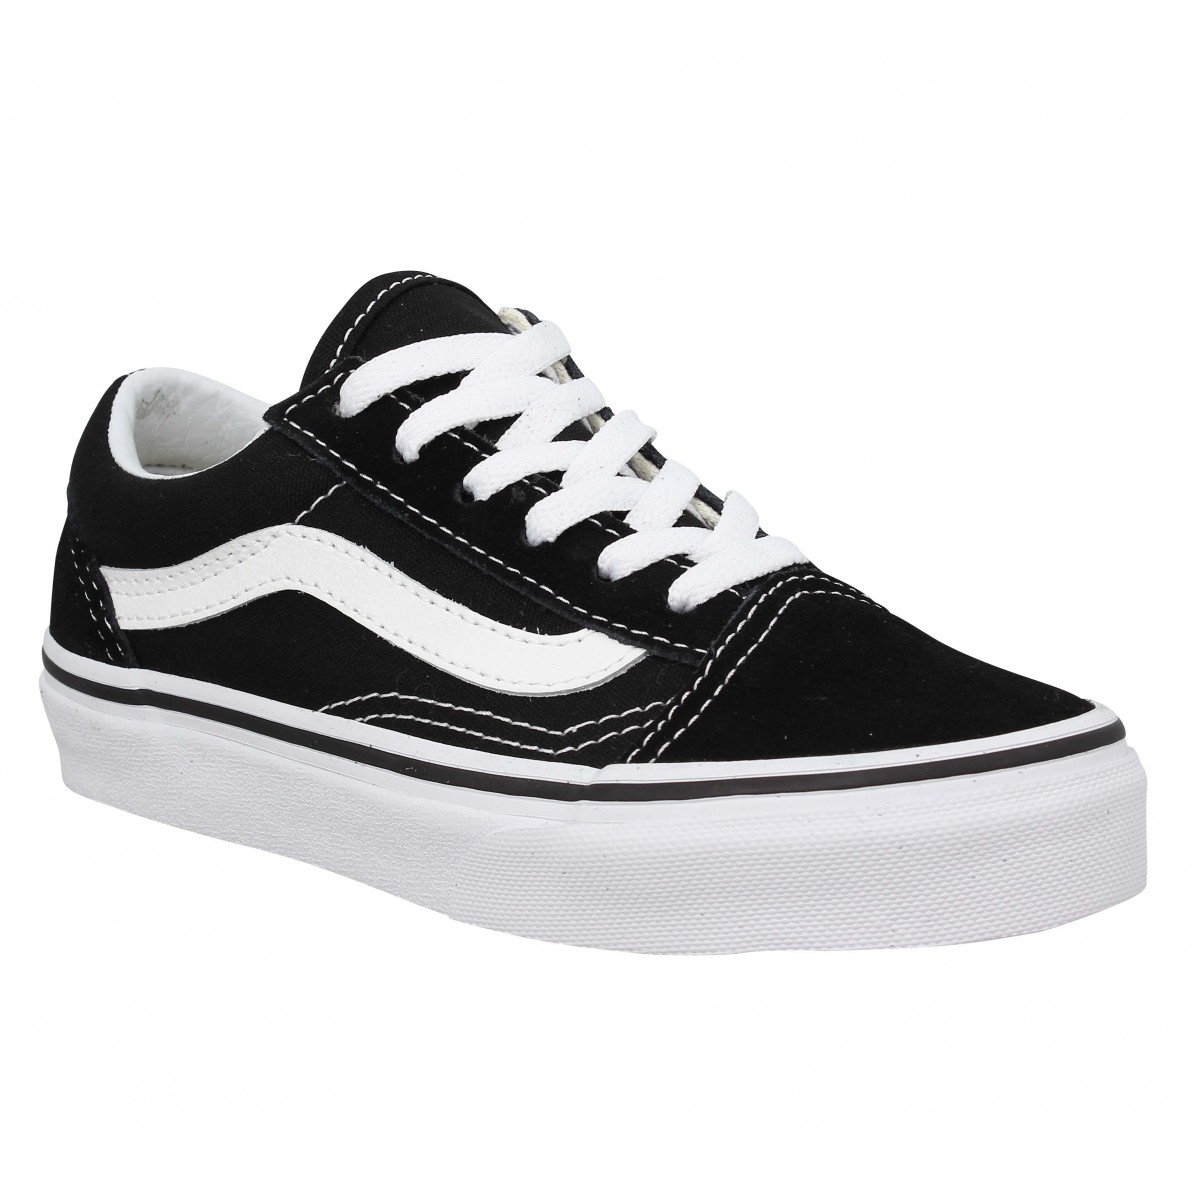 Baskets VANS Old Skool Lace velours toile Enfant Noir